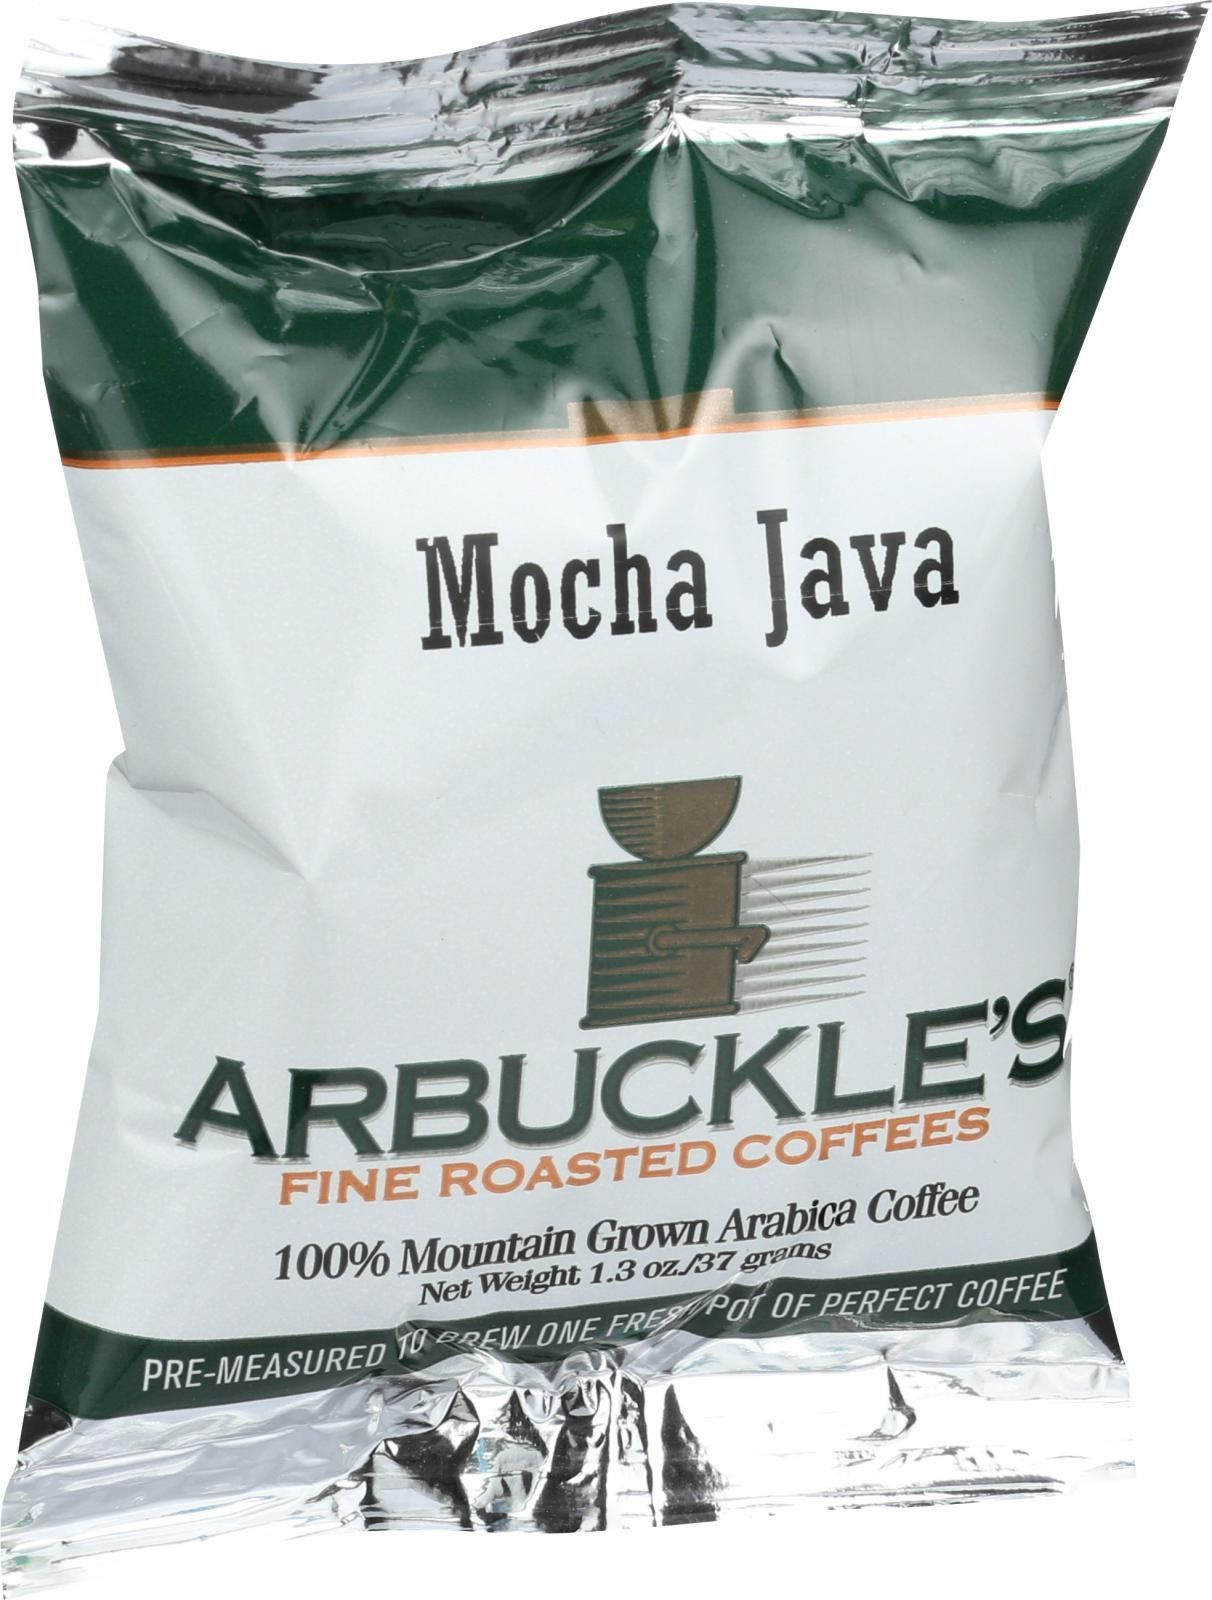 Arbuckles' Coffee - Mocha Java - 1.3 oz - Case of 10 | Products ...